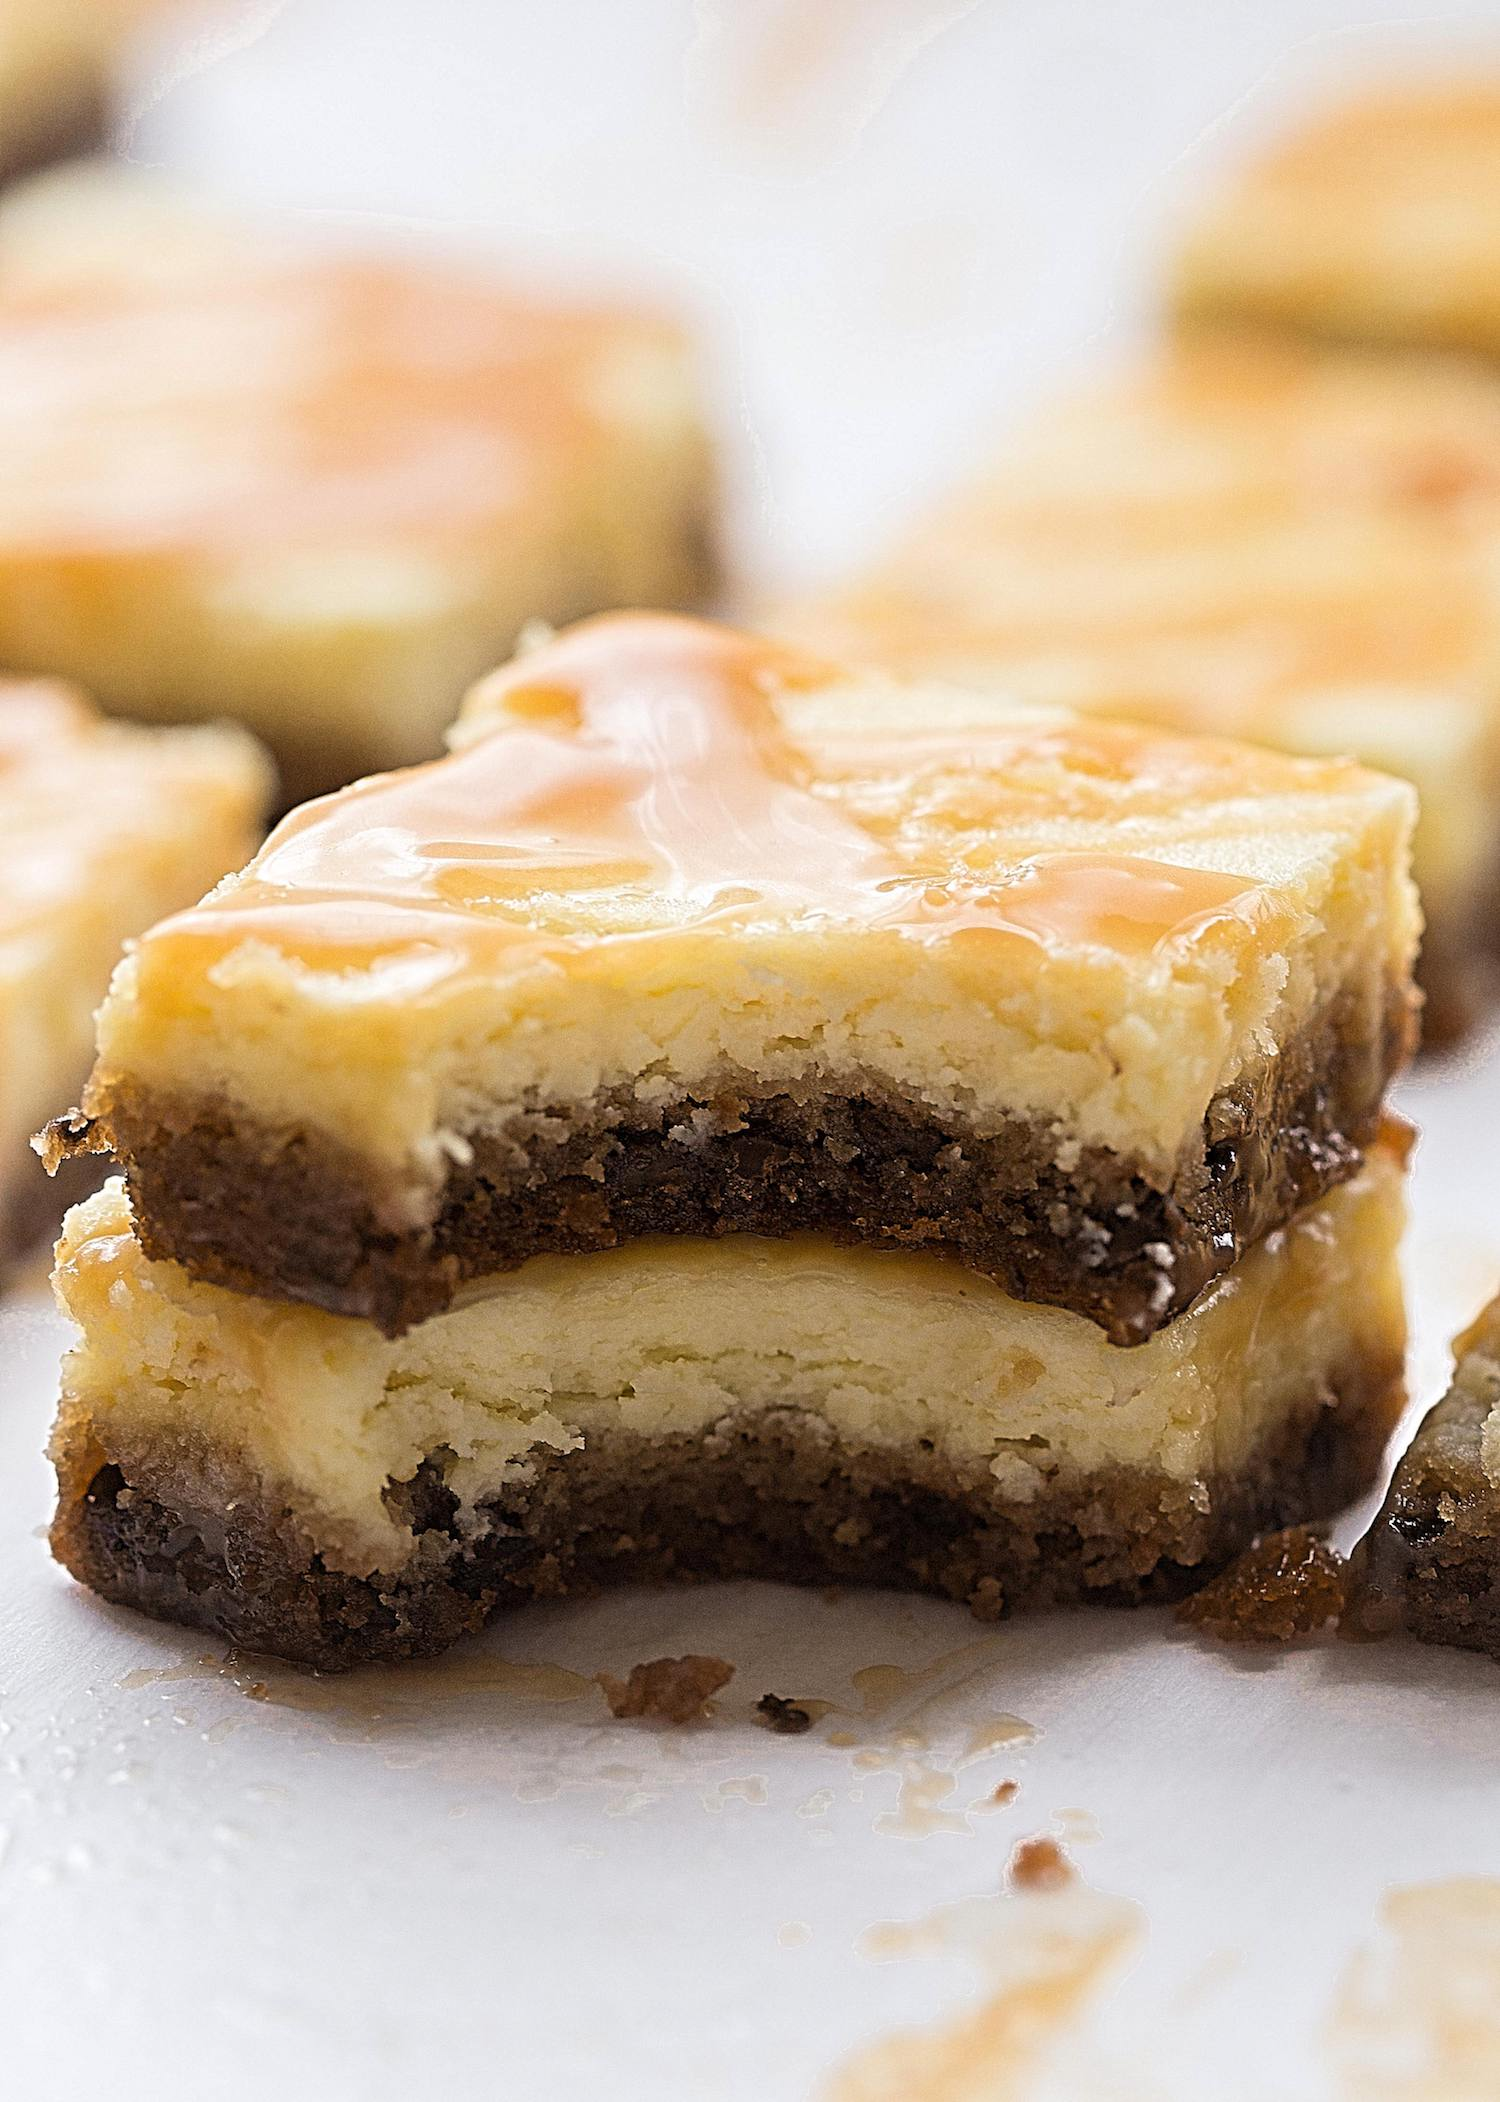 Salted Caramel Cheesecake Cookie Bars: gooey chocolate chip cookie dough topped with a classic, creamy cheesecake filling and a salted caramel drizzle. Easier than they look! | TrufflesandTrends.com